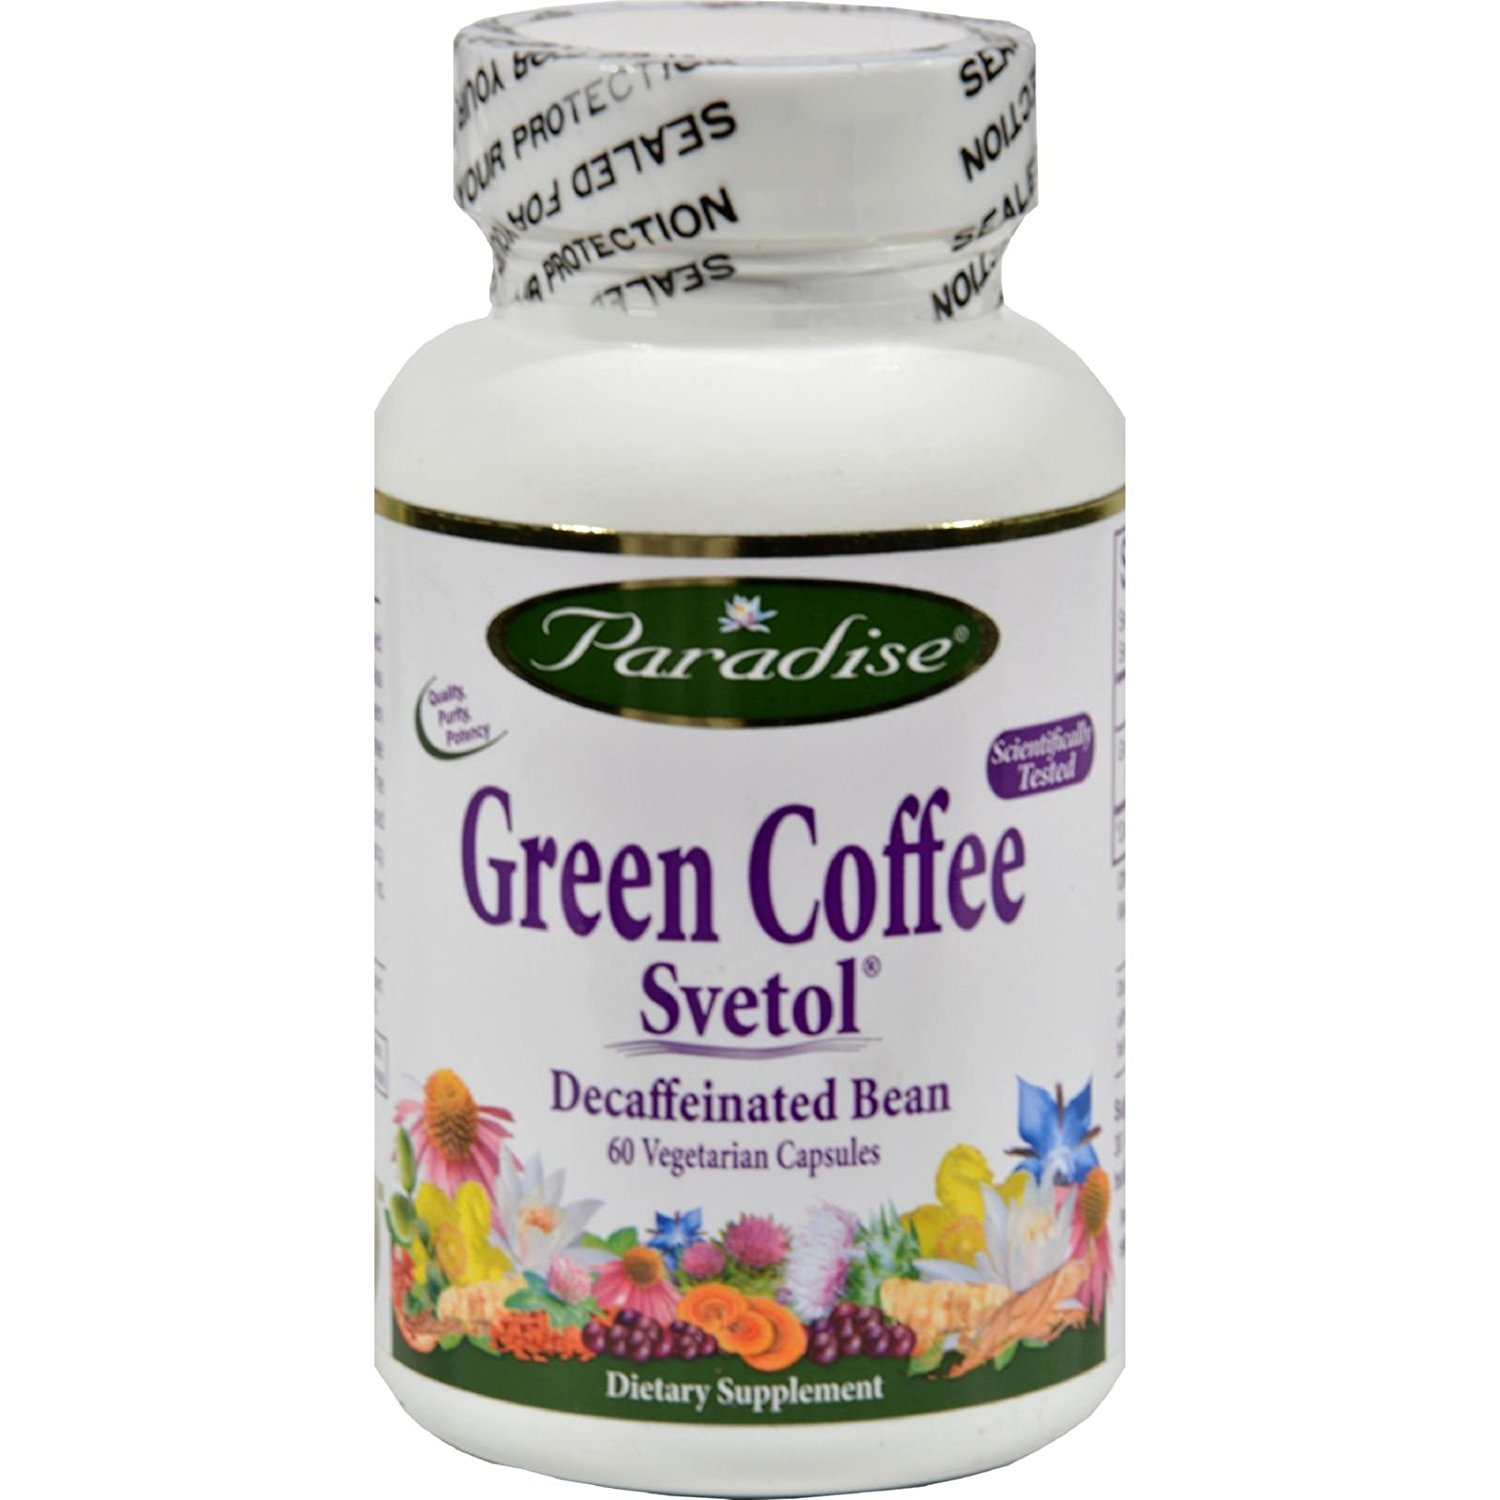 Paradise Herbs Green Coffee Svetol - 60 Vcaps (Pack of 2) by Paradise Herbs